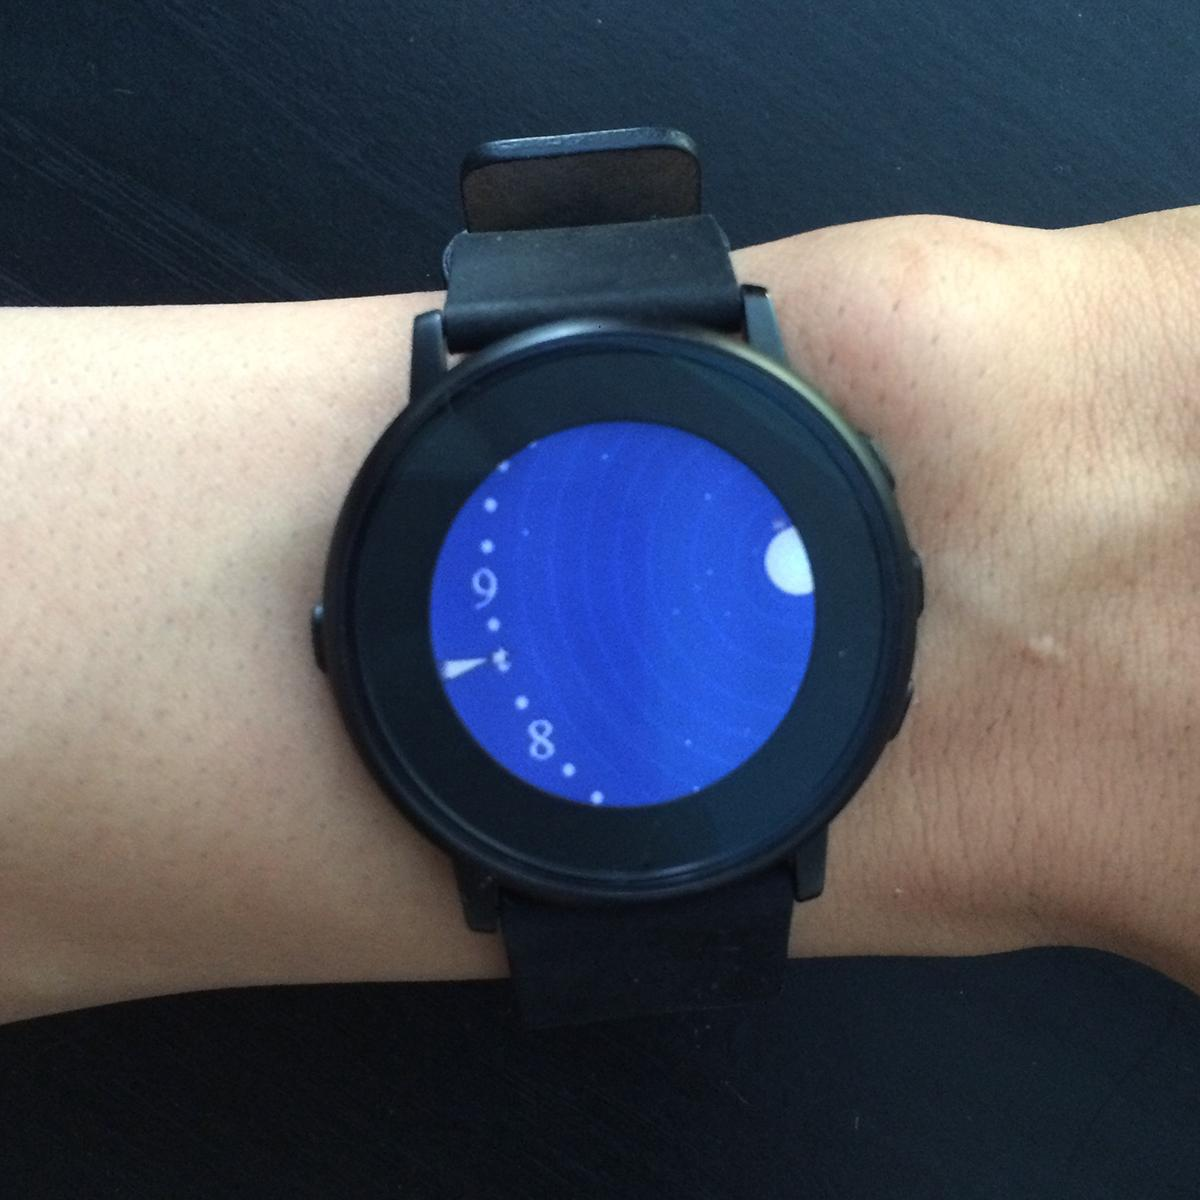 Planetarium Pebble watch face